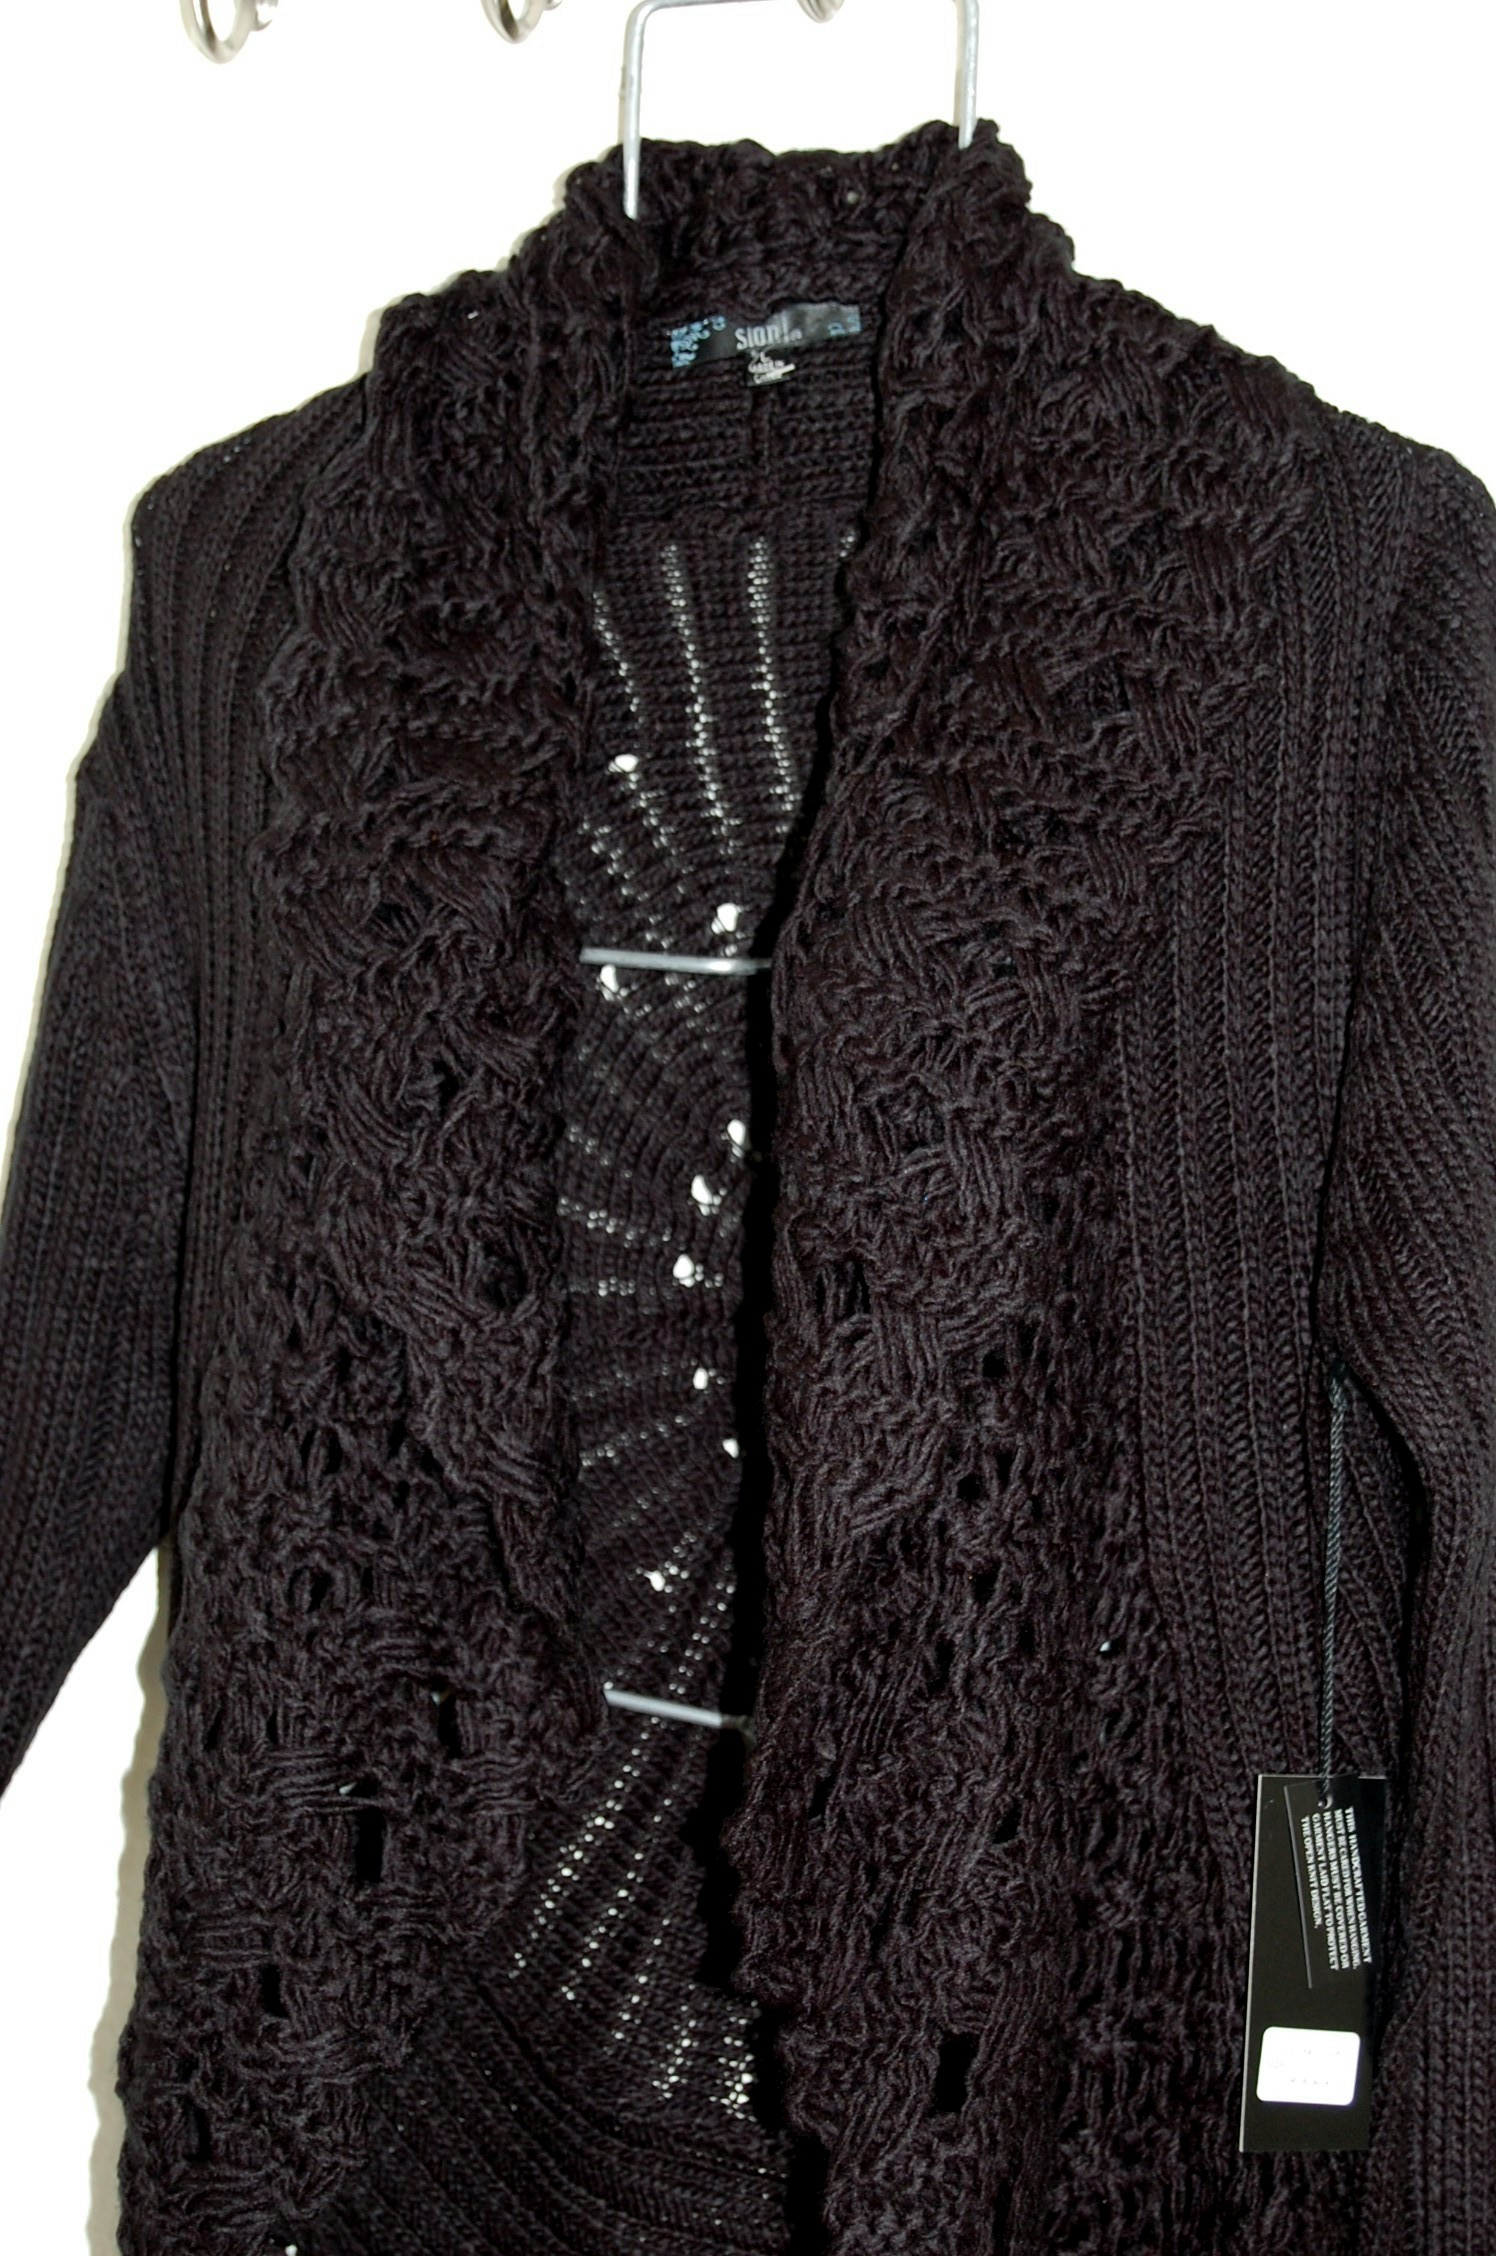 Sioni Sweater Coat